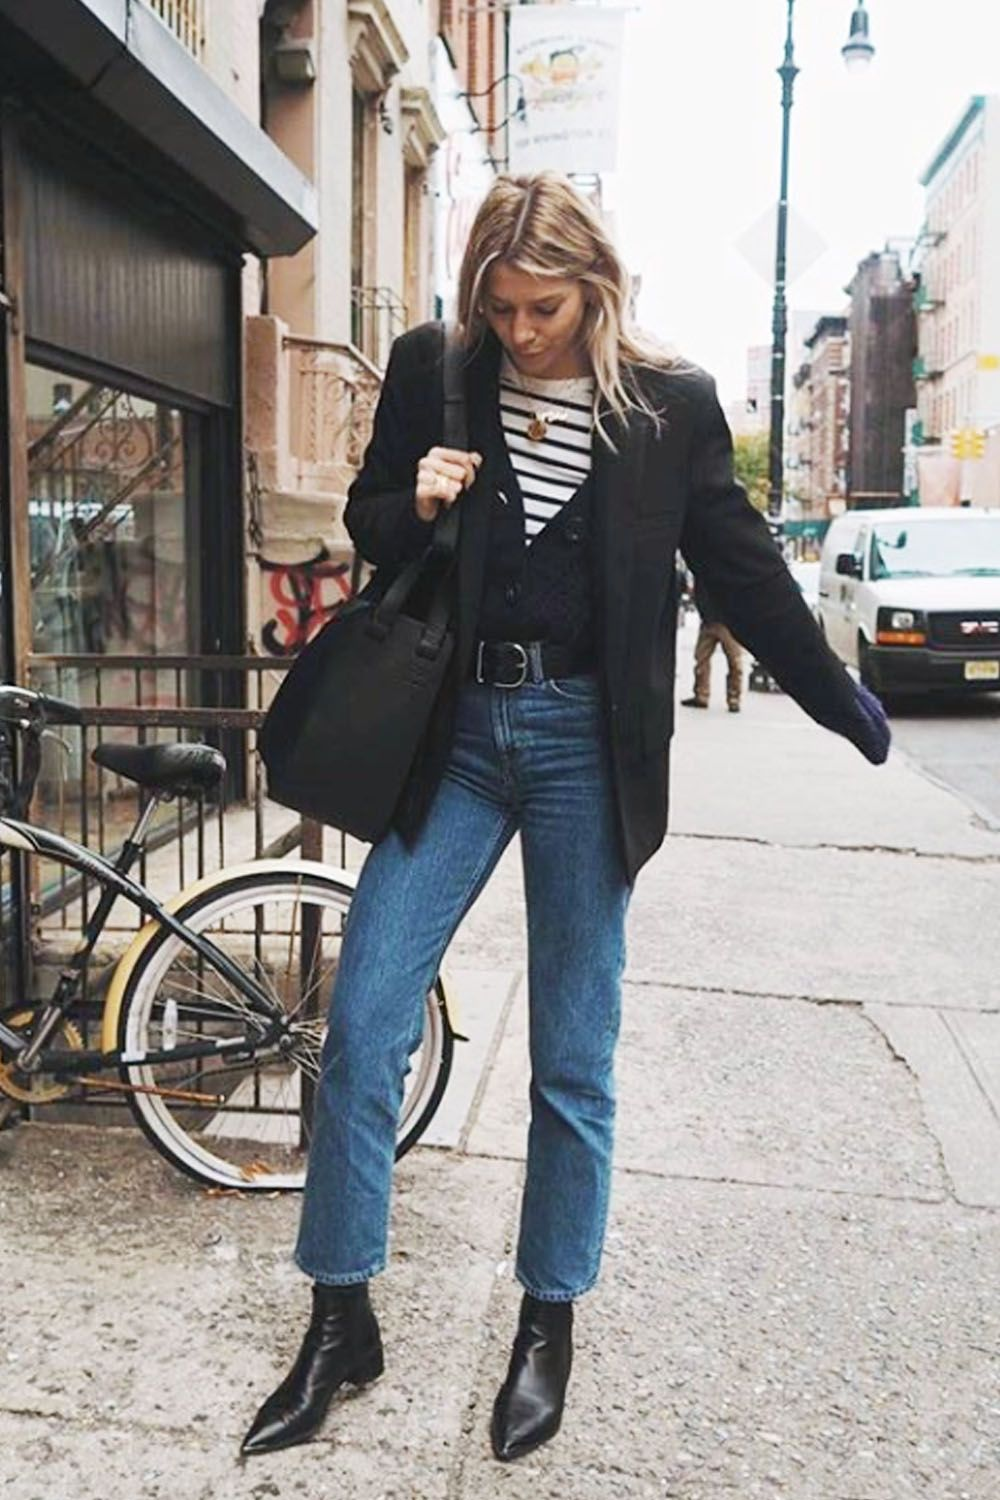 These Jeans Are Set to Be More Popular Than Skinnies in 2019